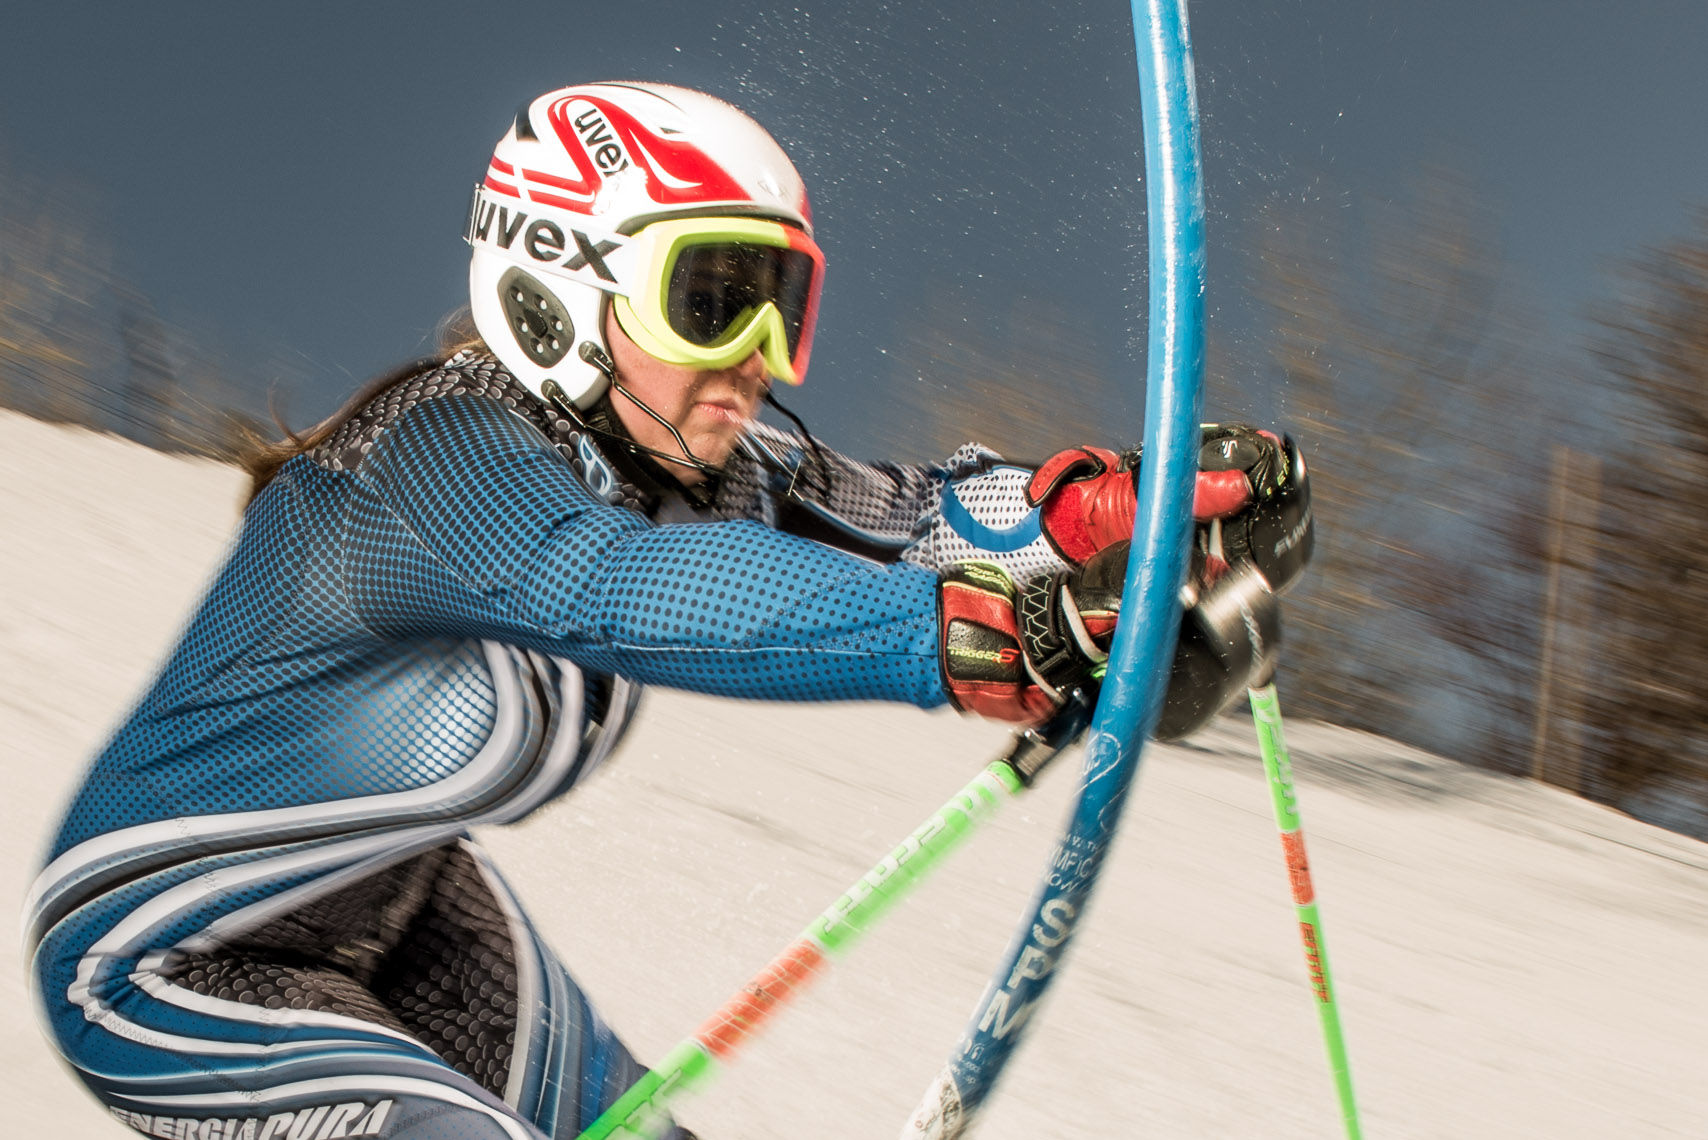 Kevin Steele - ski racers train in Colorado